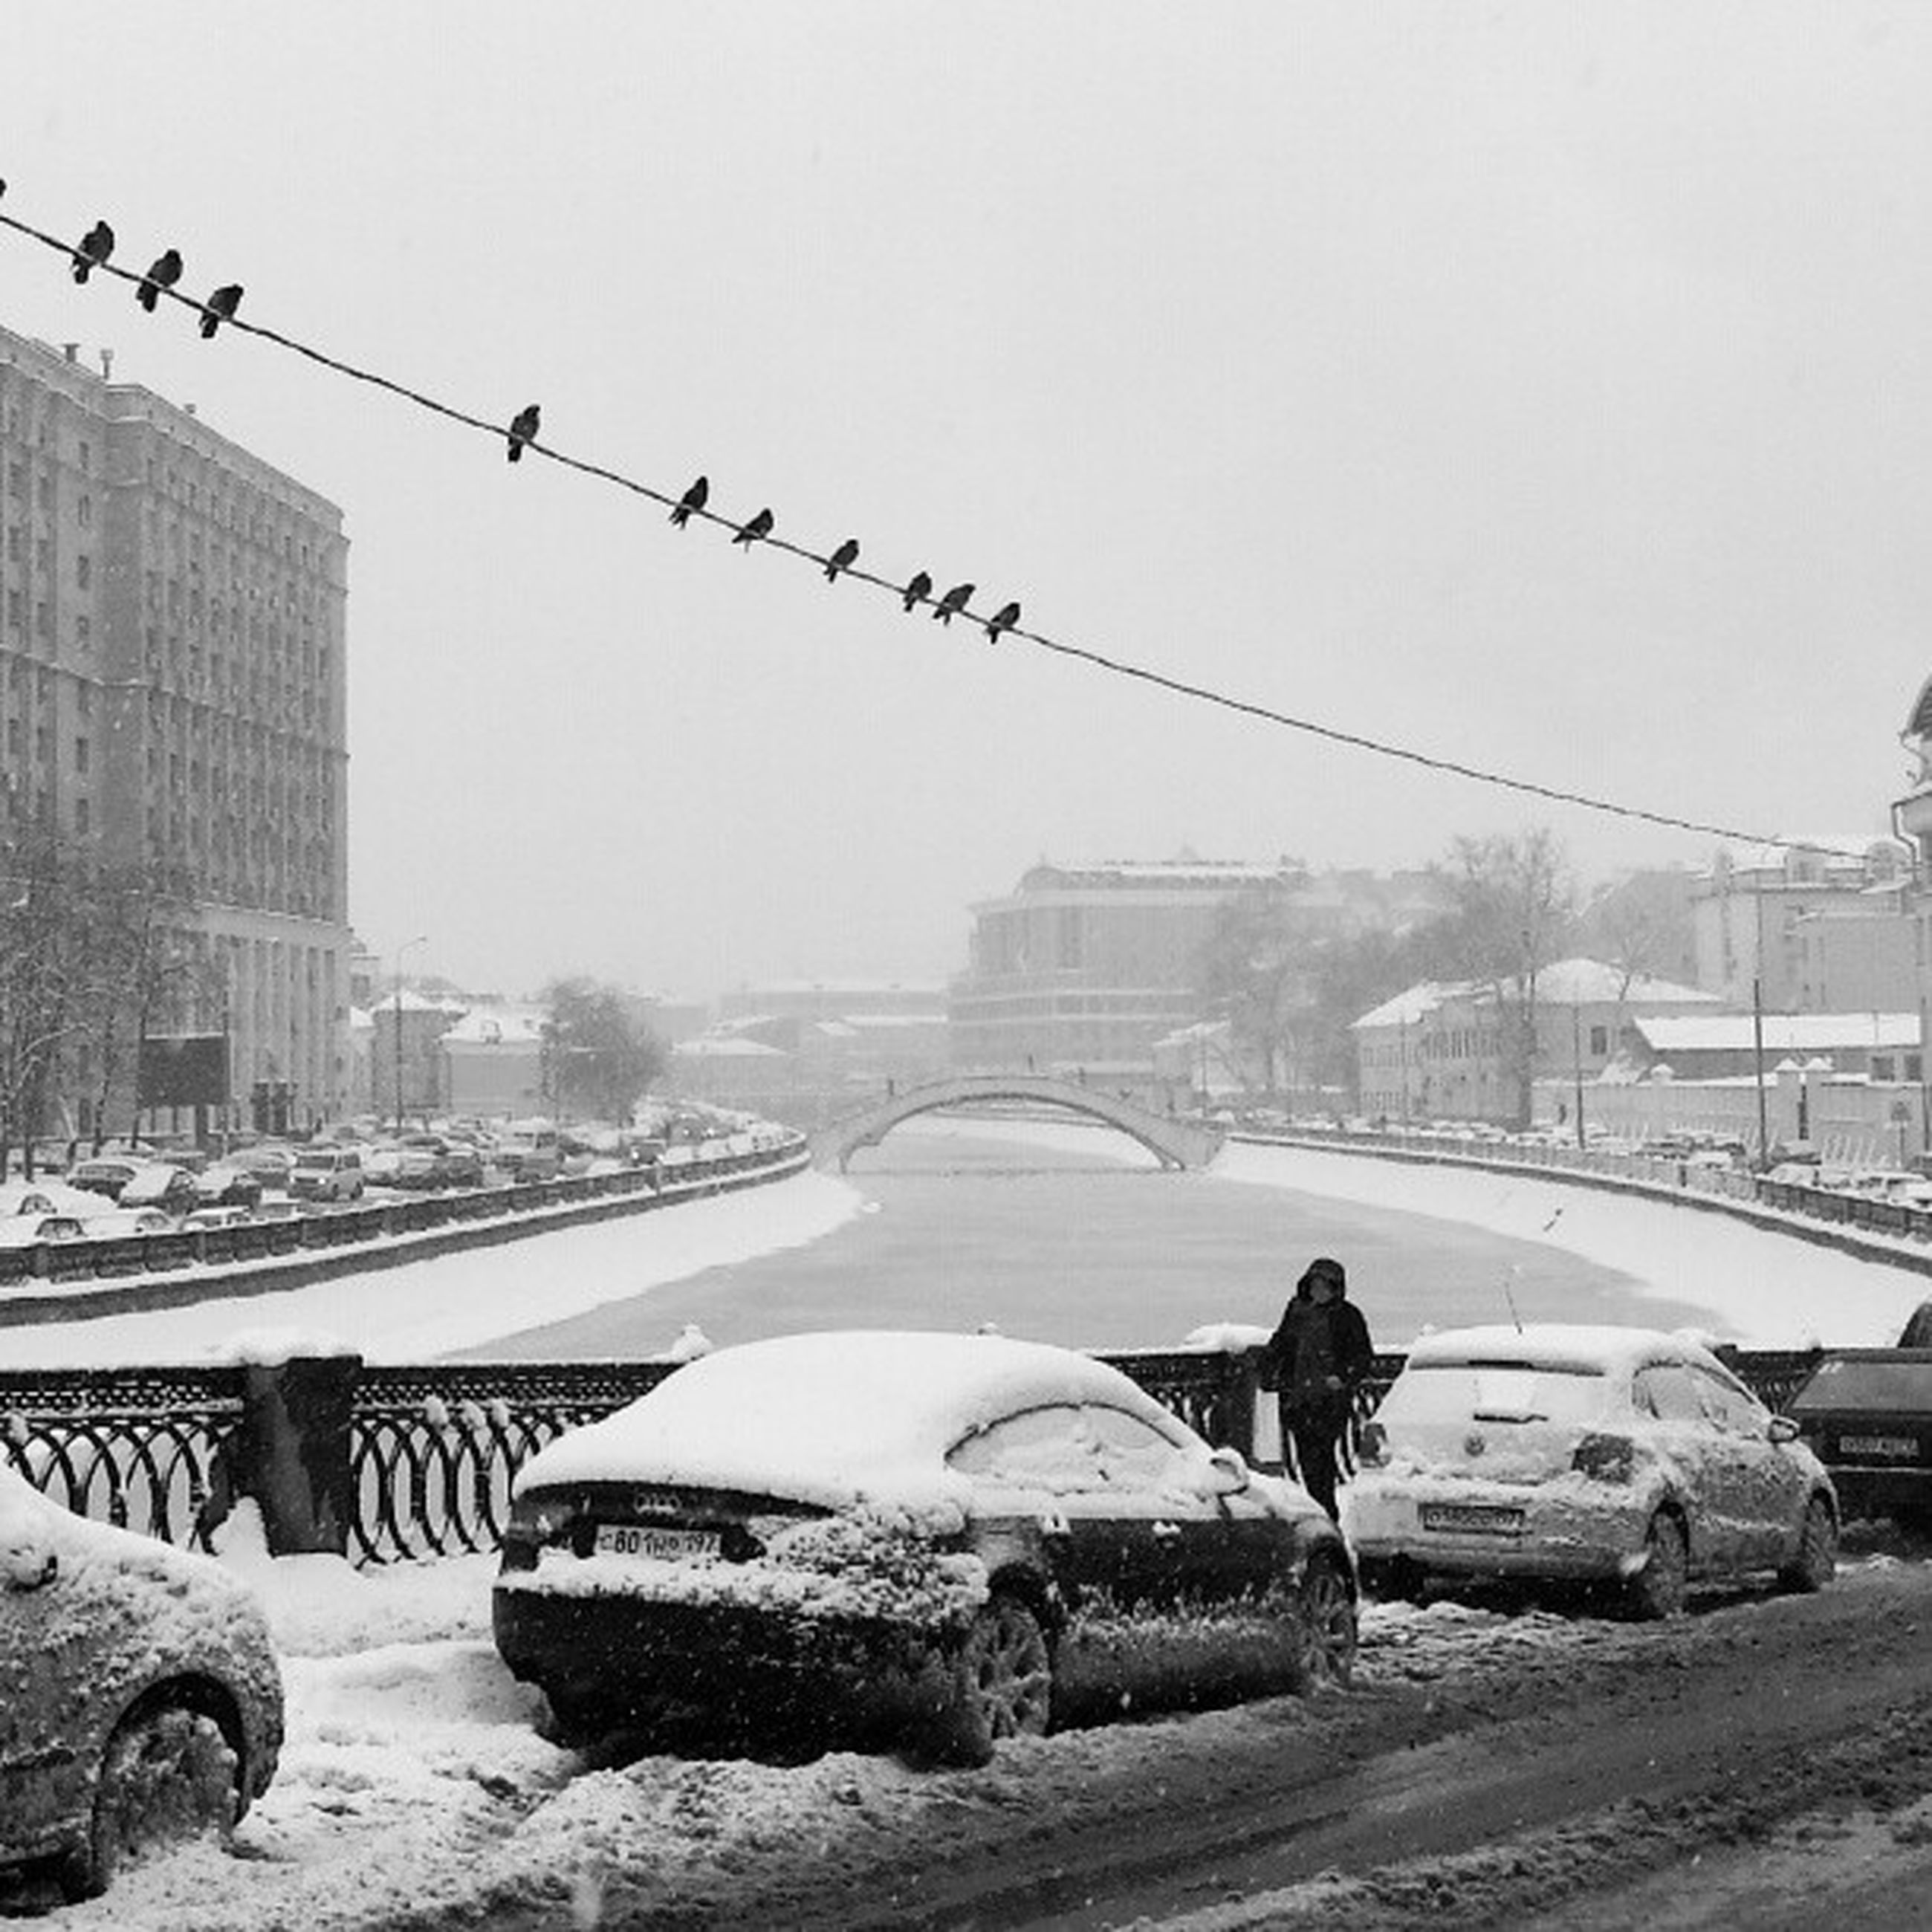 bird, building exterior, built structure, architecture, animal themes, transportation, clear sky, city, animals in the wild, mode of transport, wildlife, car, flying, copy space, day, incidental people, winter, land vehicle, street